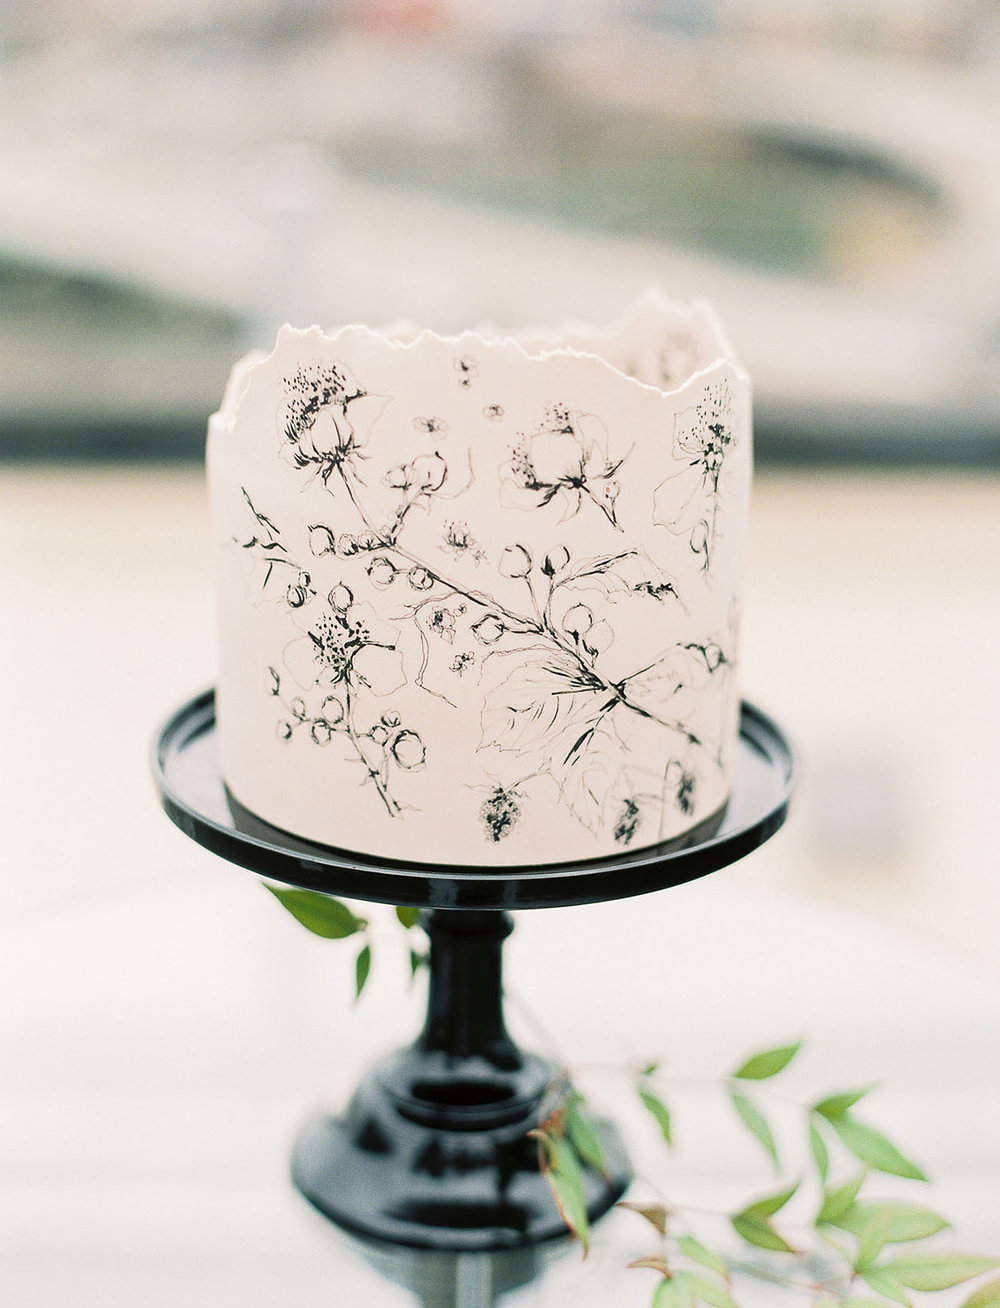 There's no better way to display your cake as a work of art than to make it a  literal  work of art. Painted cakes are taking over, and we're here for it. The best part: painted floral cakes come in kinds of style from modern to impressionism to realism. They'd belong in a museum if they didn't taste so good!